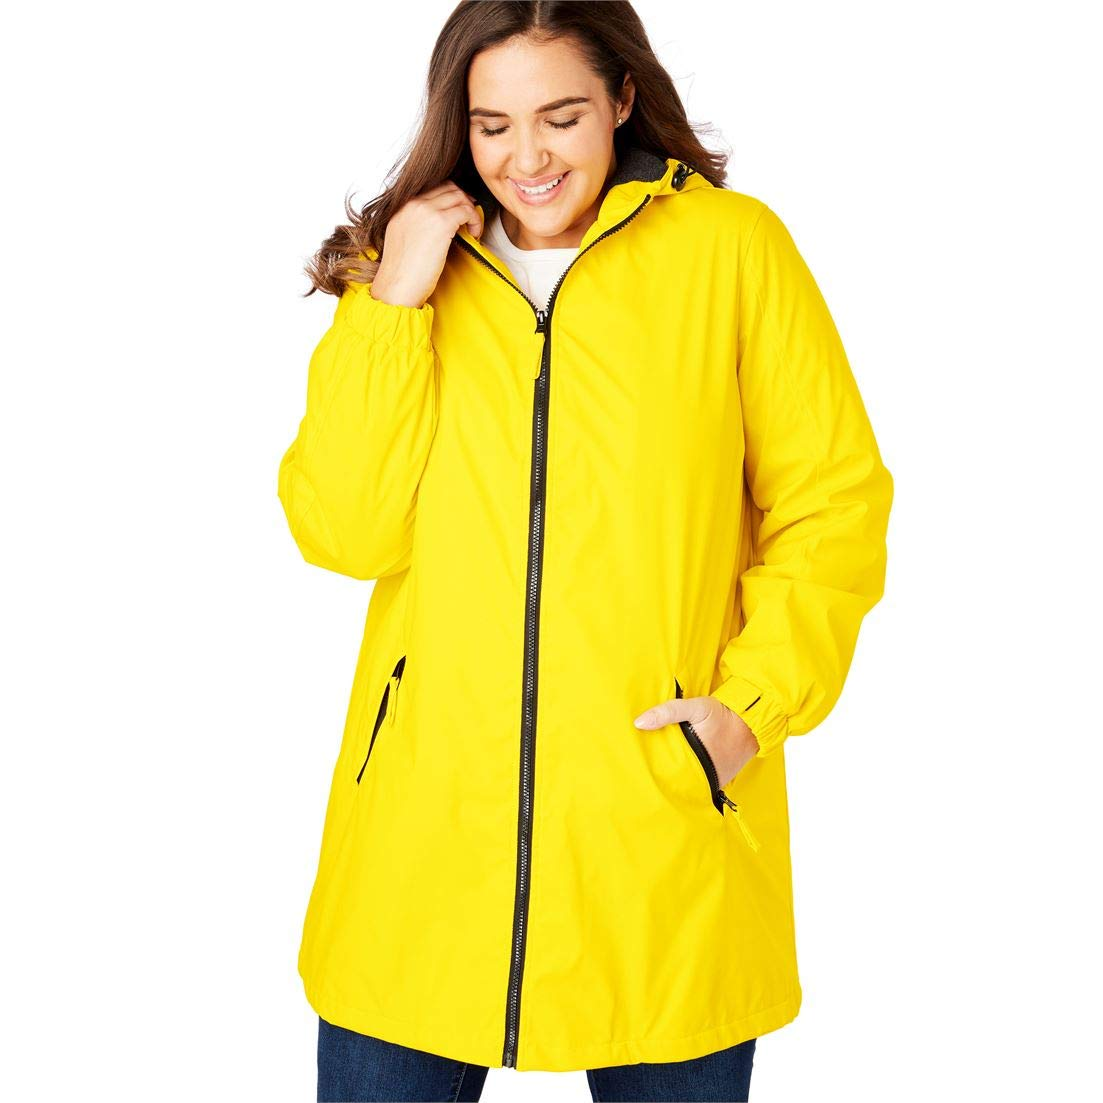 db4b9985b9c Amazon.com  Woman Within Plus Size Hooded Slicker Raincoat  Clothing